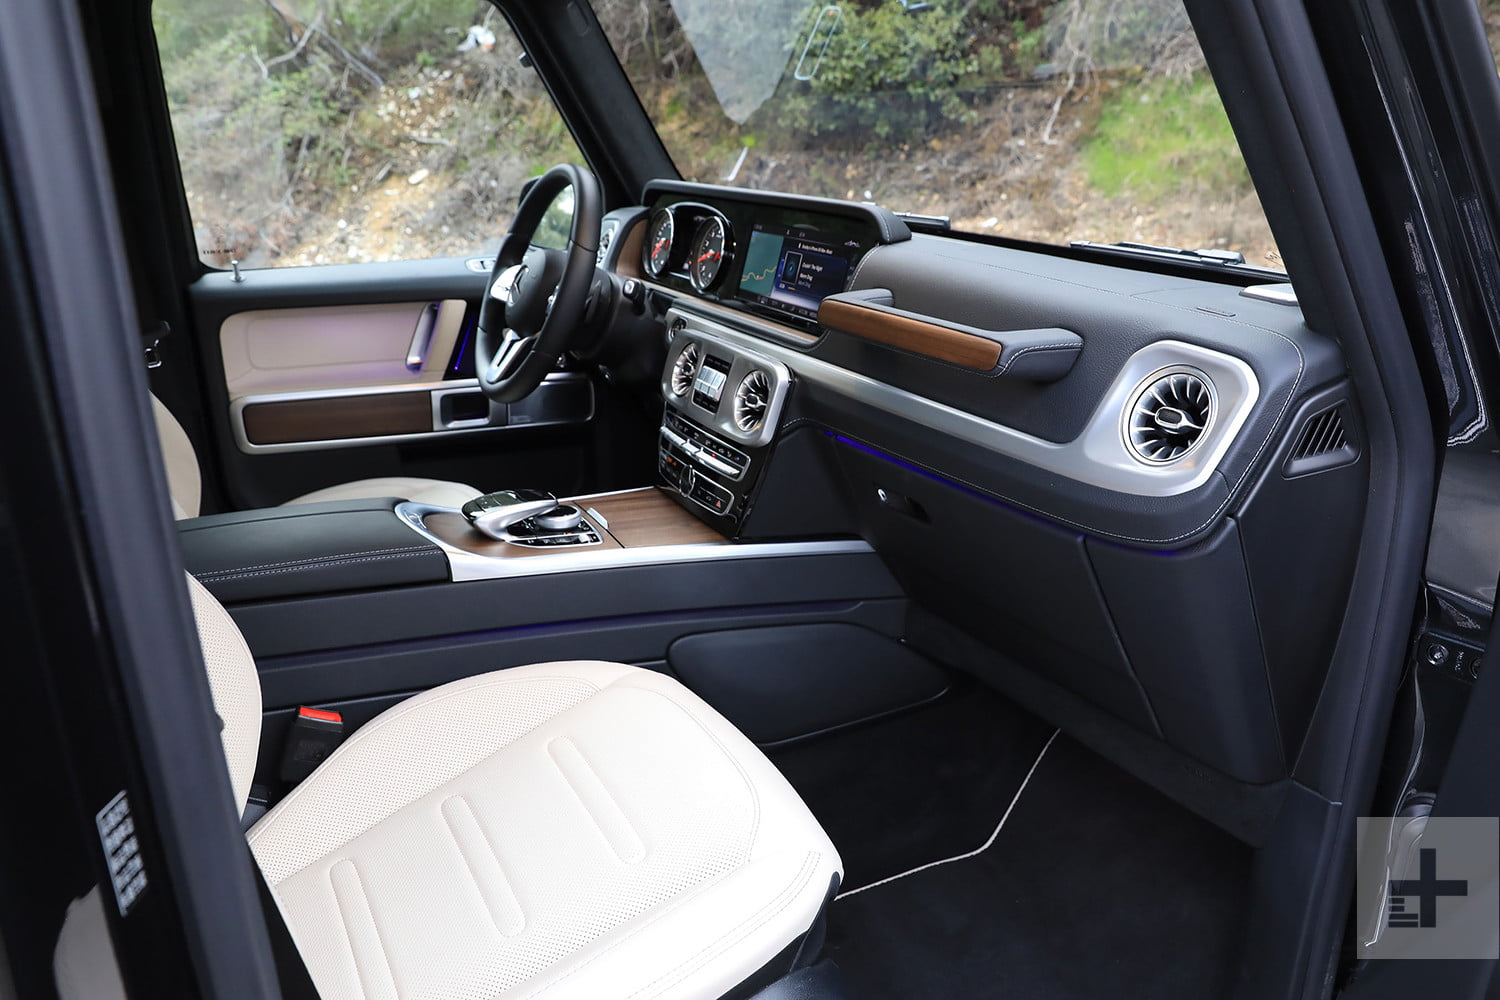 2019 Mercedes-Benz G550 Review: The Timeless G-Wagen For A